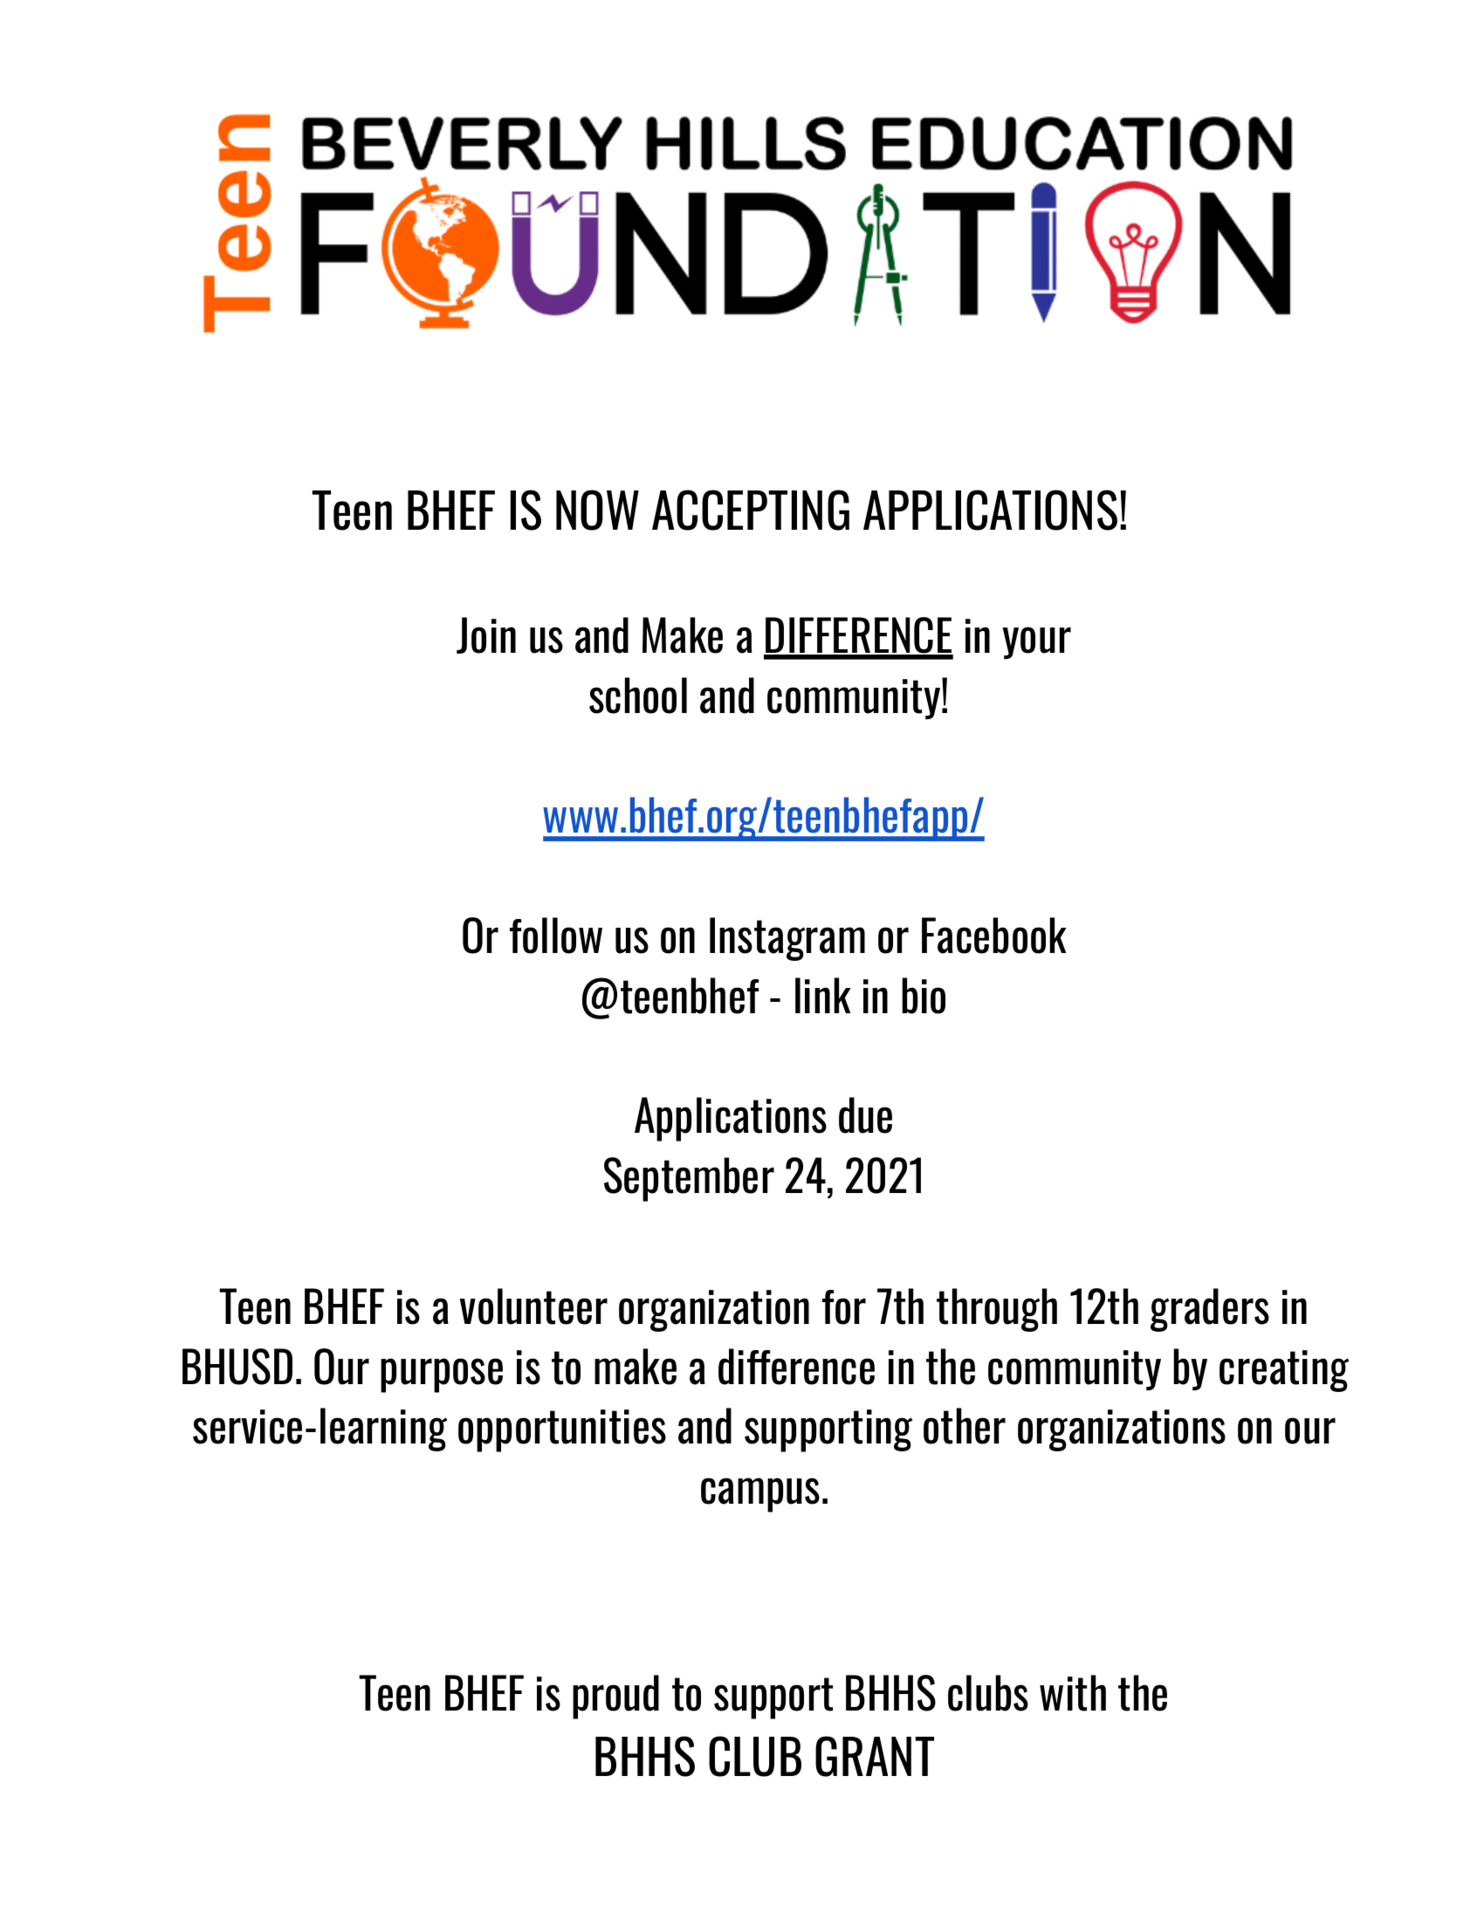 Teen BHEF Applications Now Open!